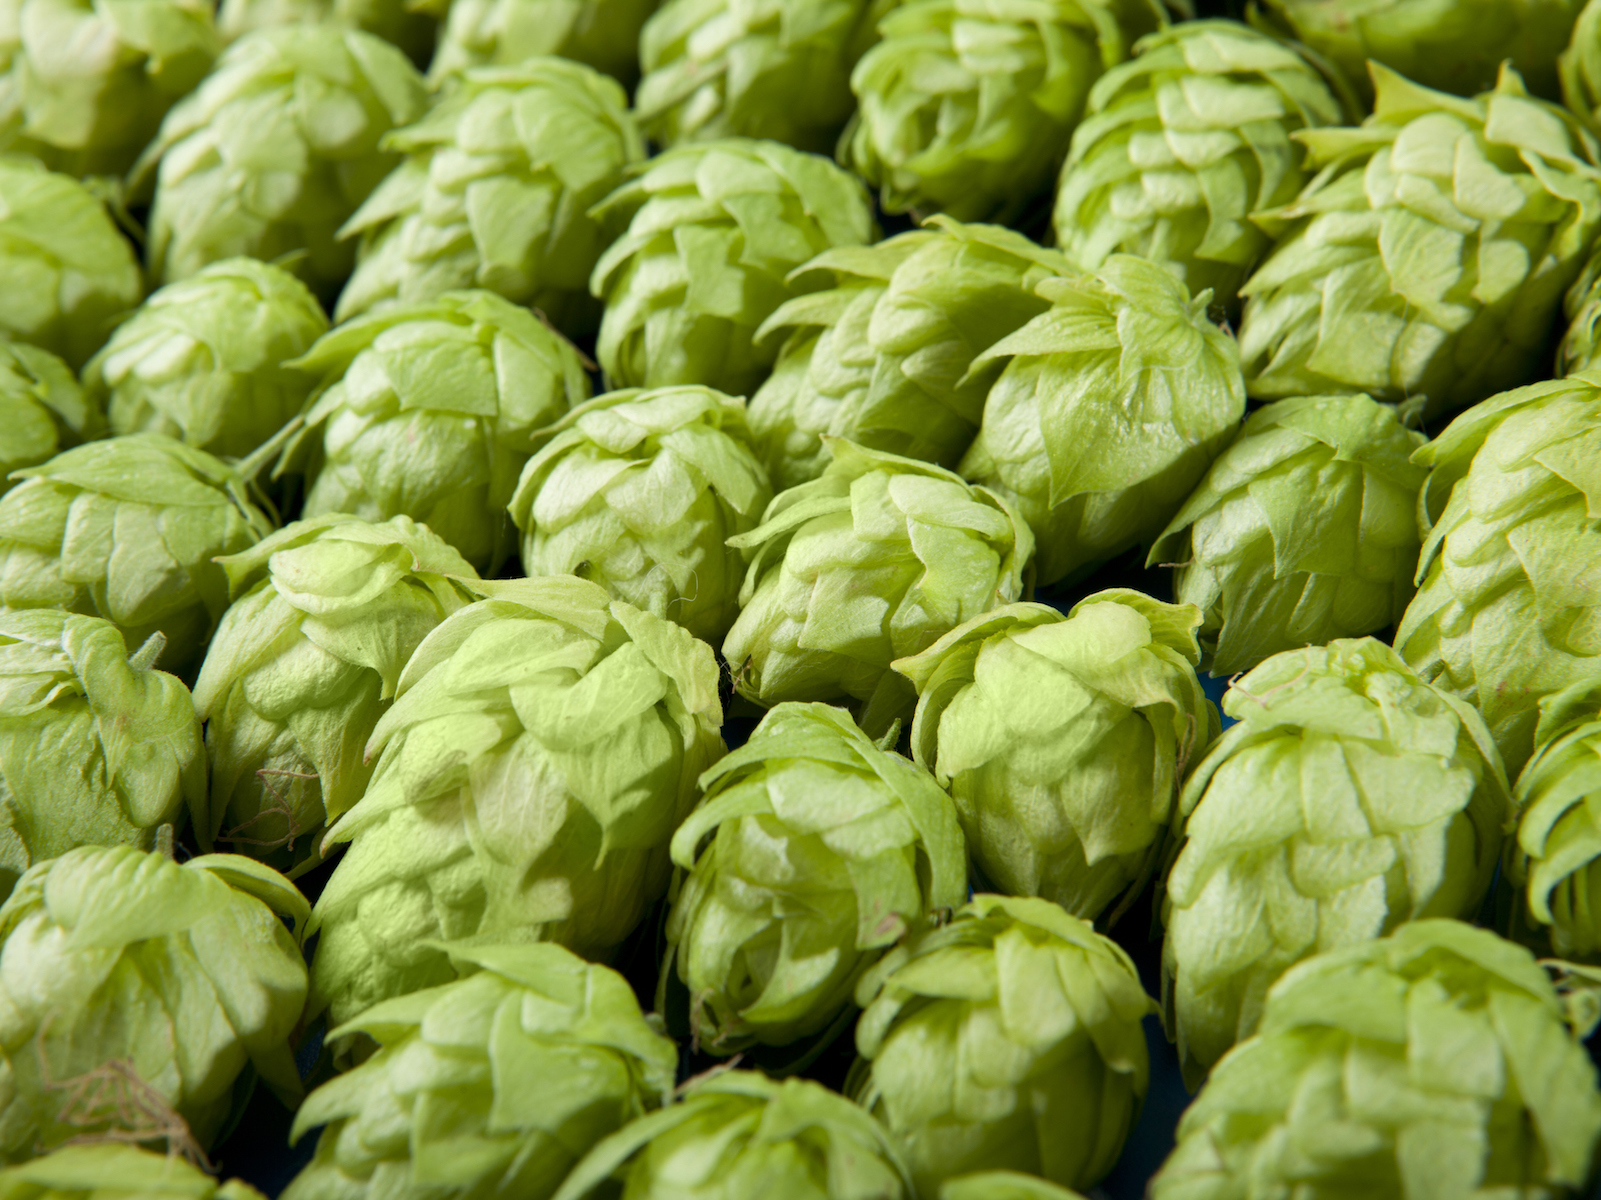 This Hydroponic Hop Farm Wants to Offer Fresh Hops for Beer All Year Long